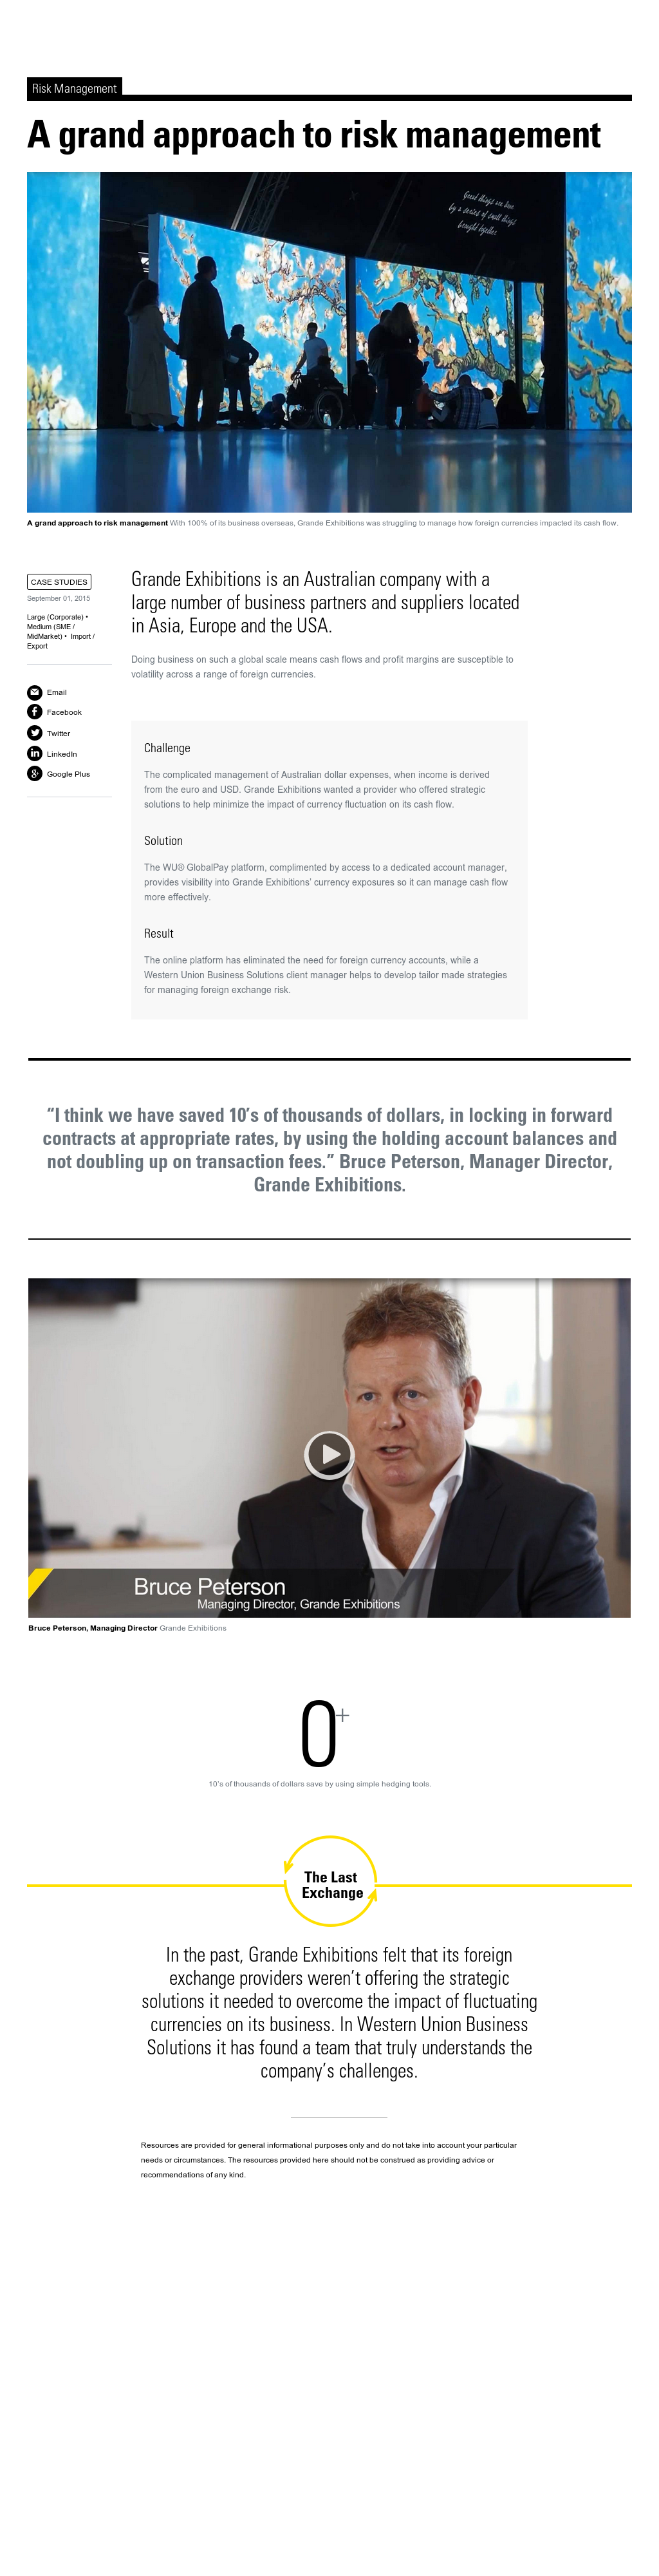 Case Study: Grande Exhibitions Approach to Risk Management